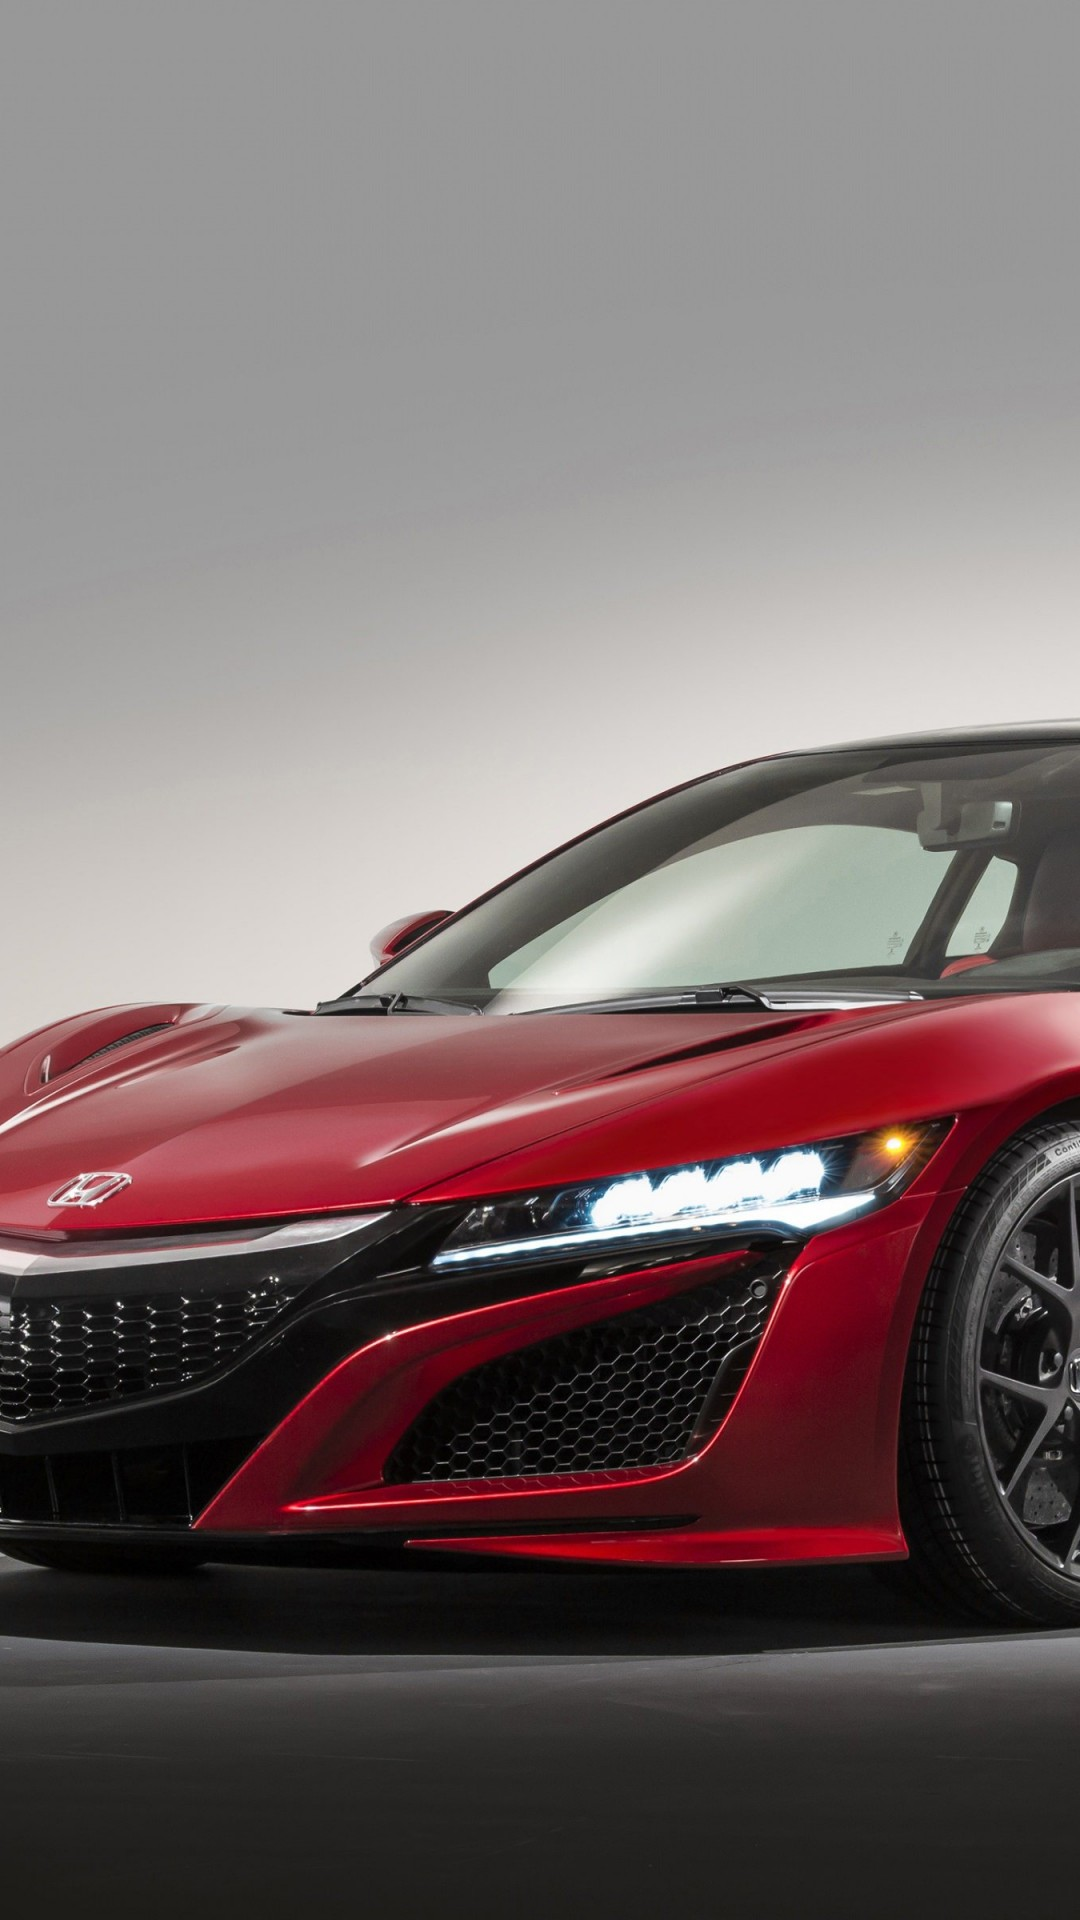 Honda NSX 2015 Wallpaper for SONY Xperia Z1